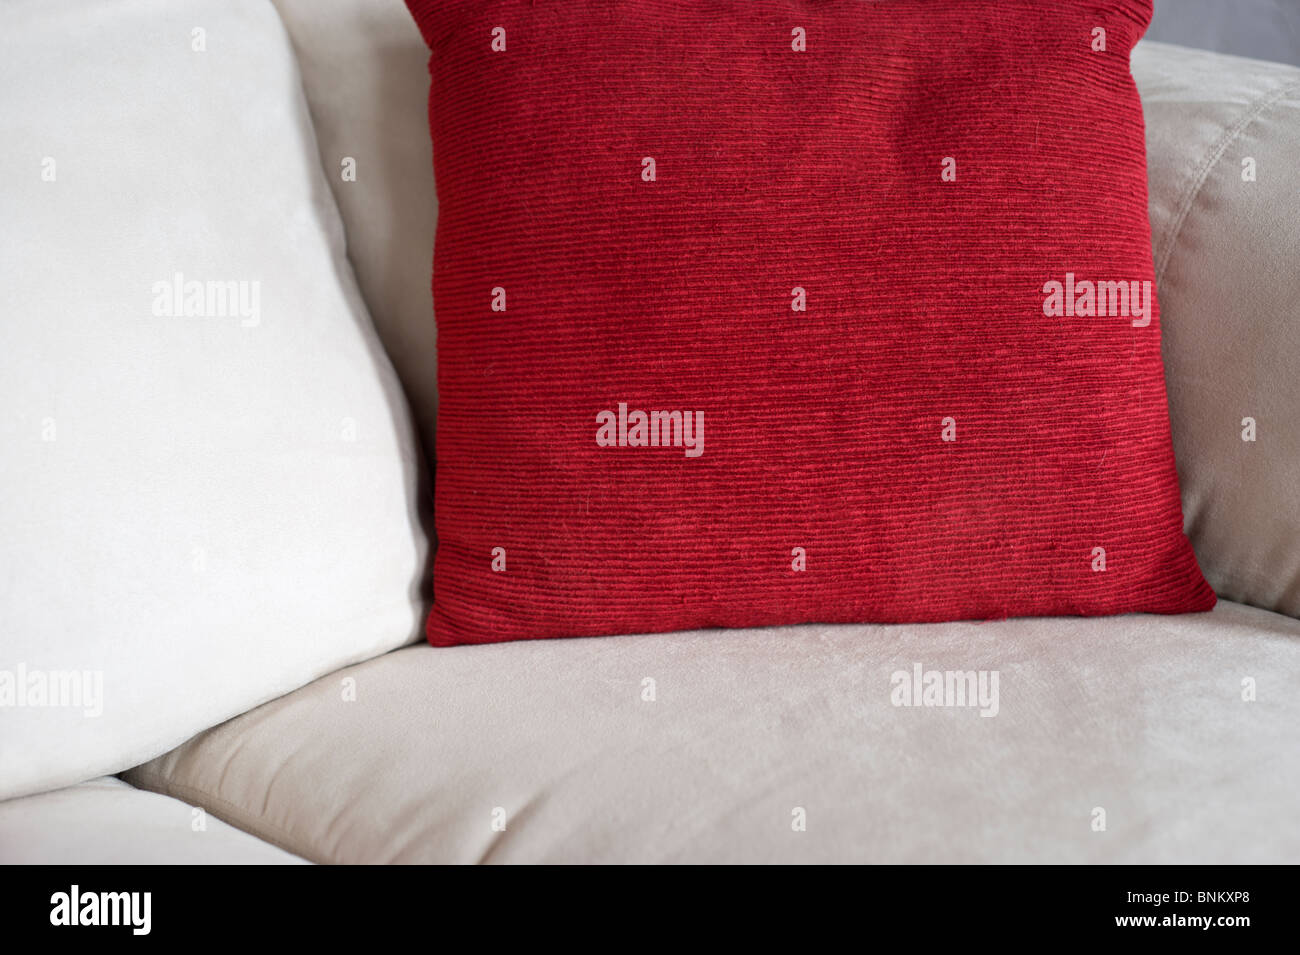 White and red pillows rest on the cushions of a couch in Corona, New Mexico. - Stock Image